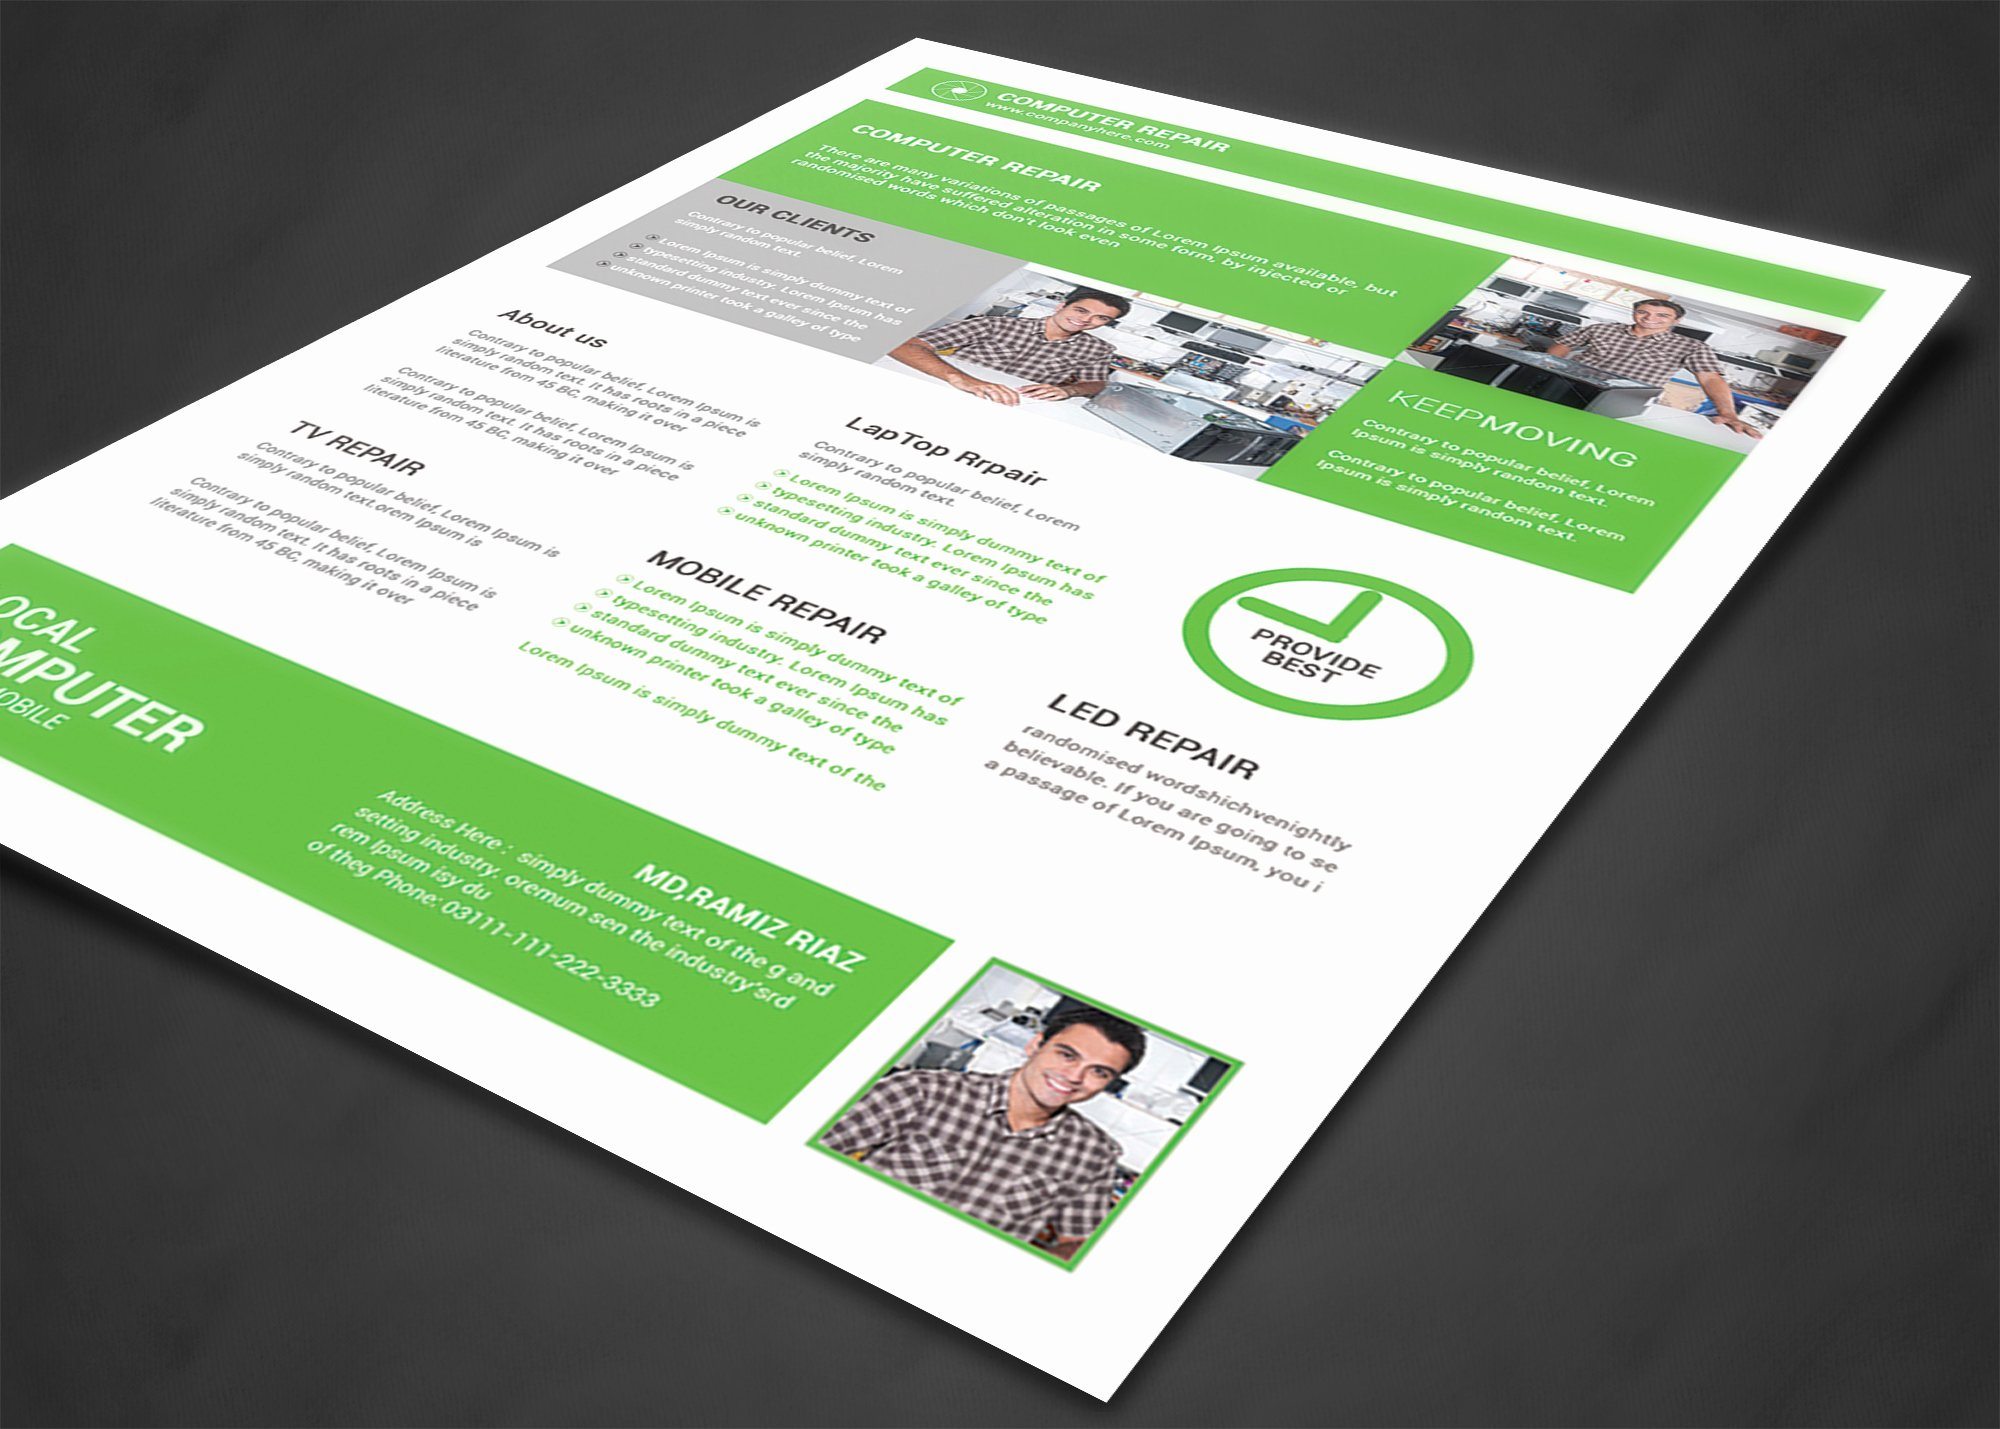 Computer Repair Flyers Templates Fresh Puter Repair Flyer Template Flyer Templates On